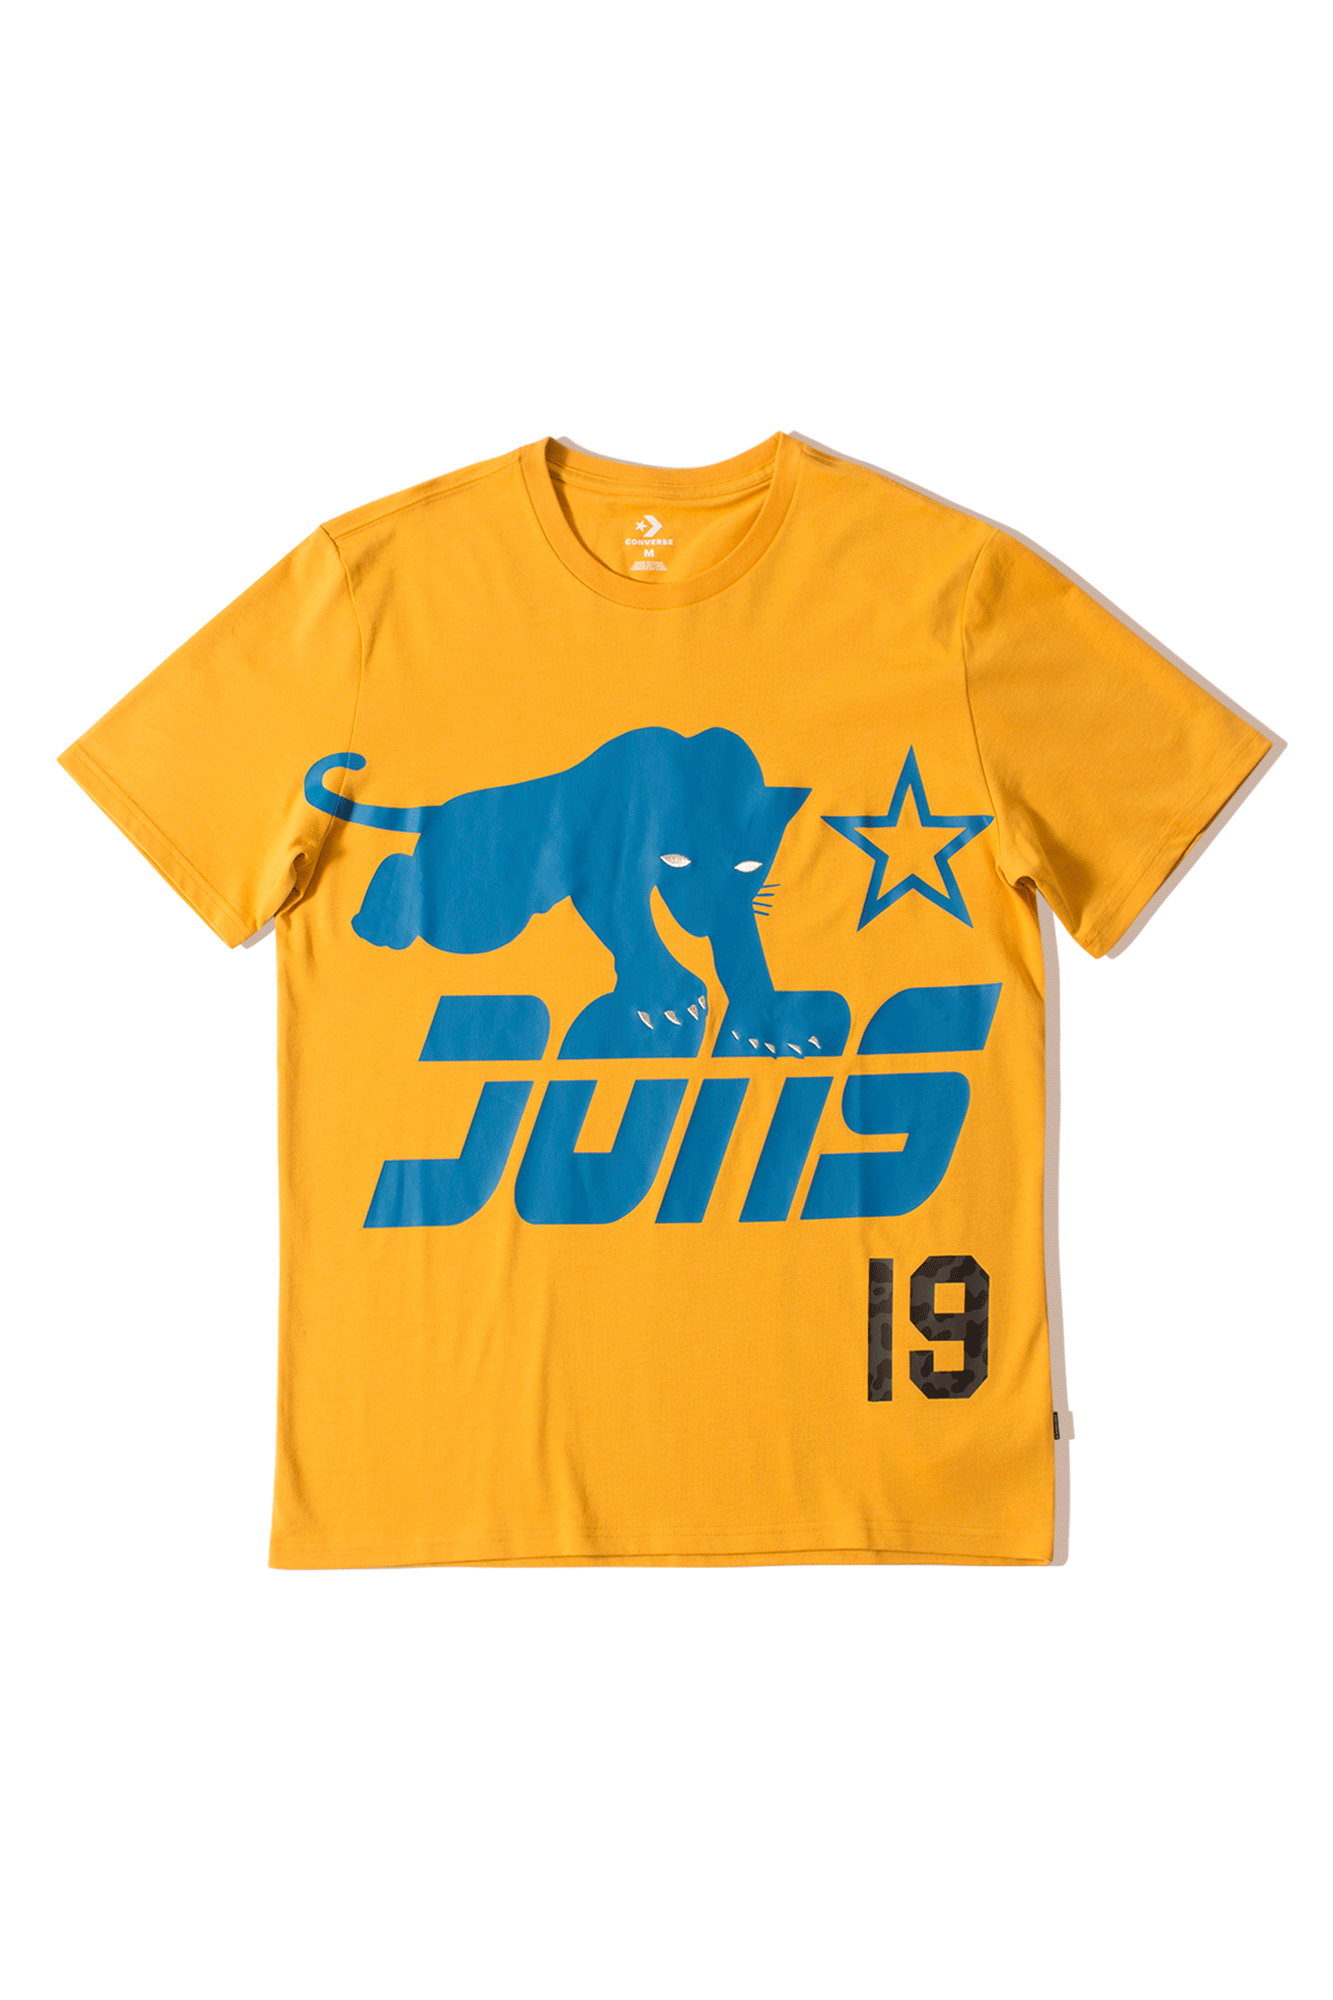 Converse T-Shirts Just Don Graphic Tee Yellow 10016960#YLW#AQUA#M - One Block Down